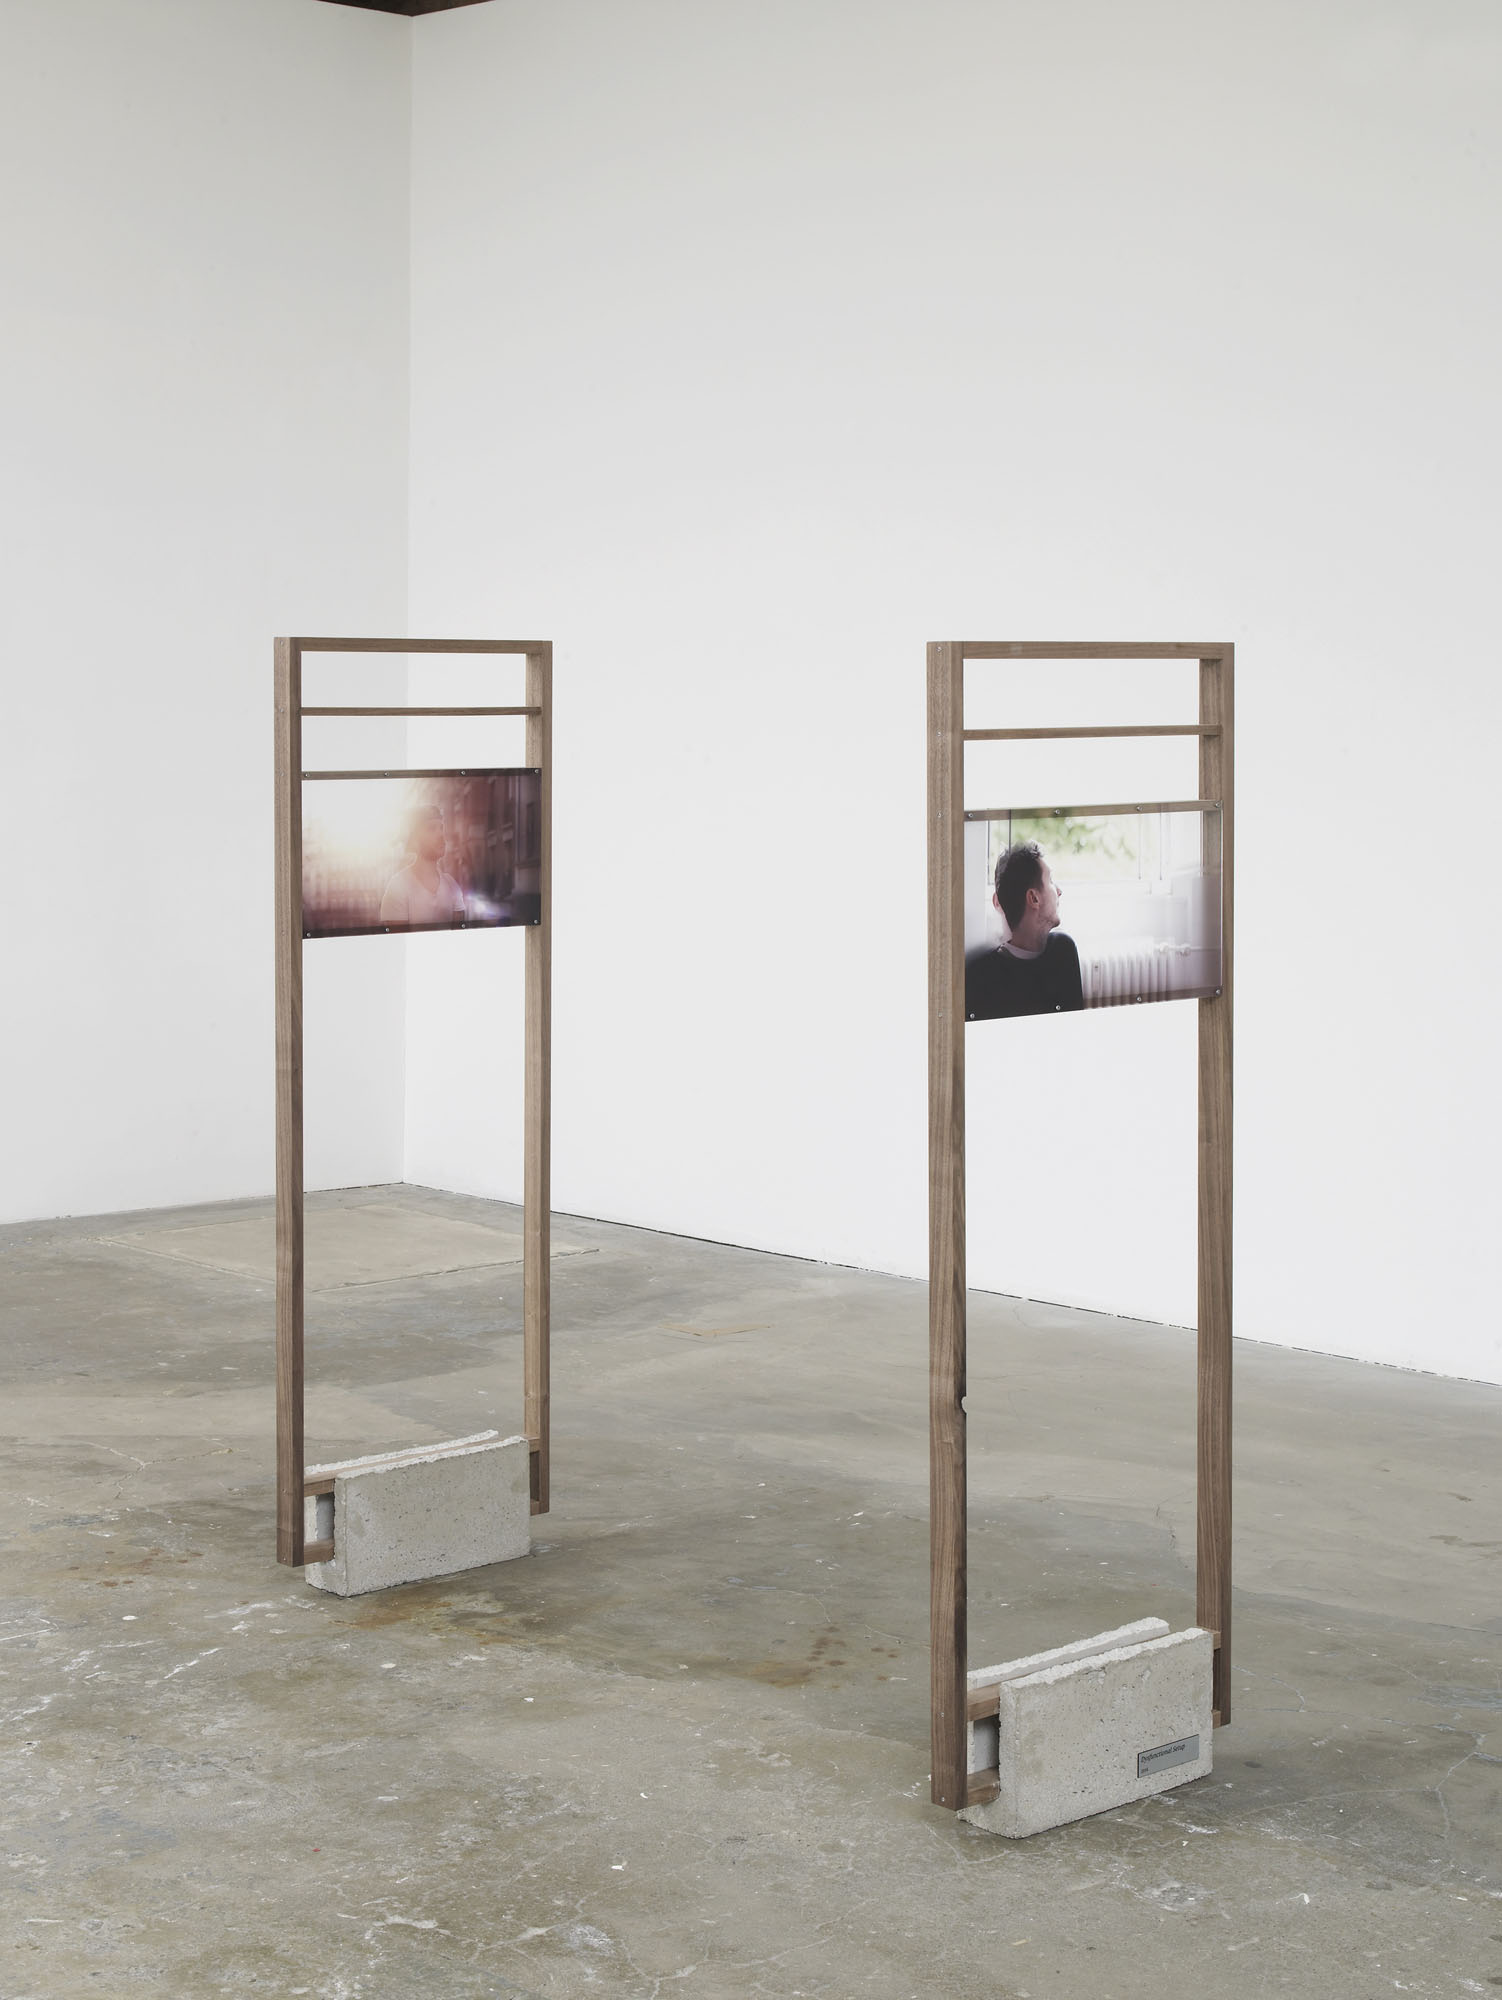 Dysfunctional Setup, 2016